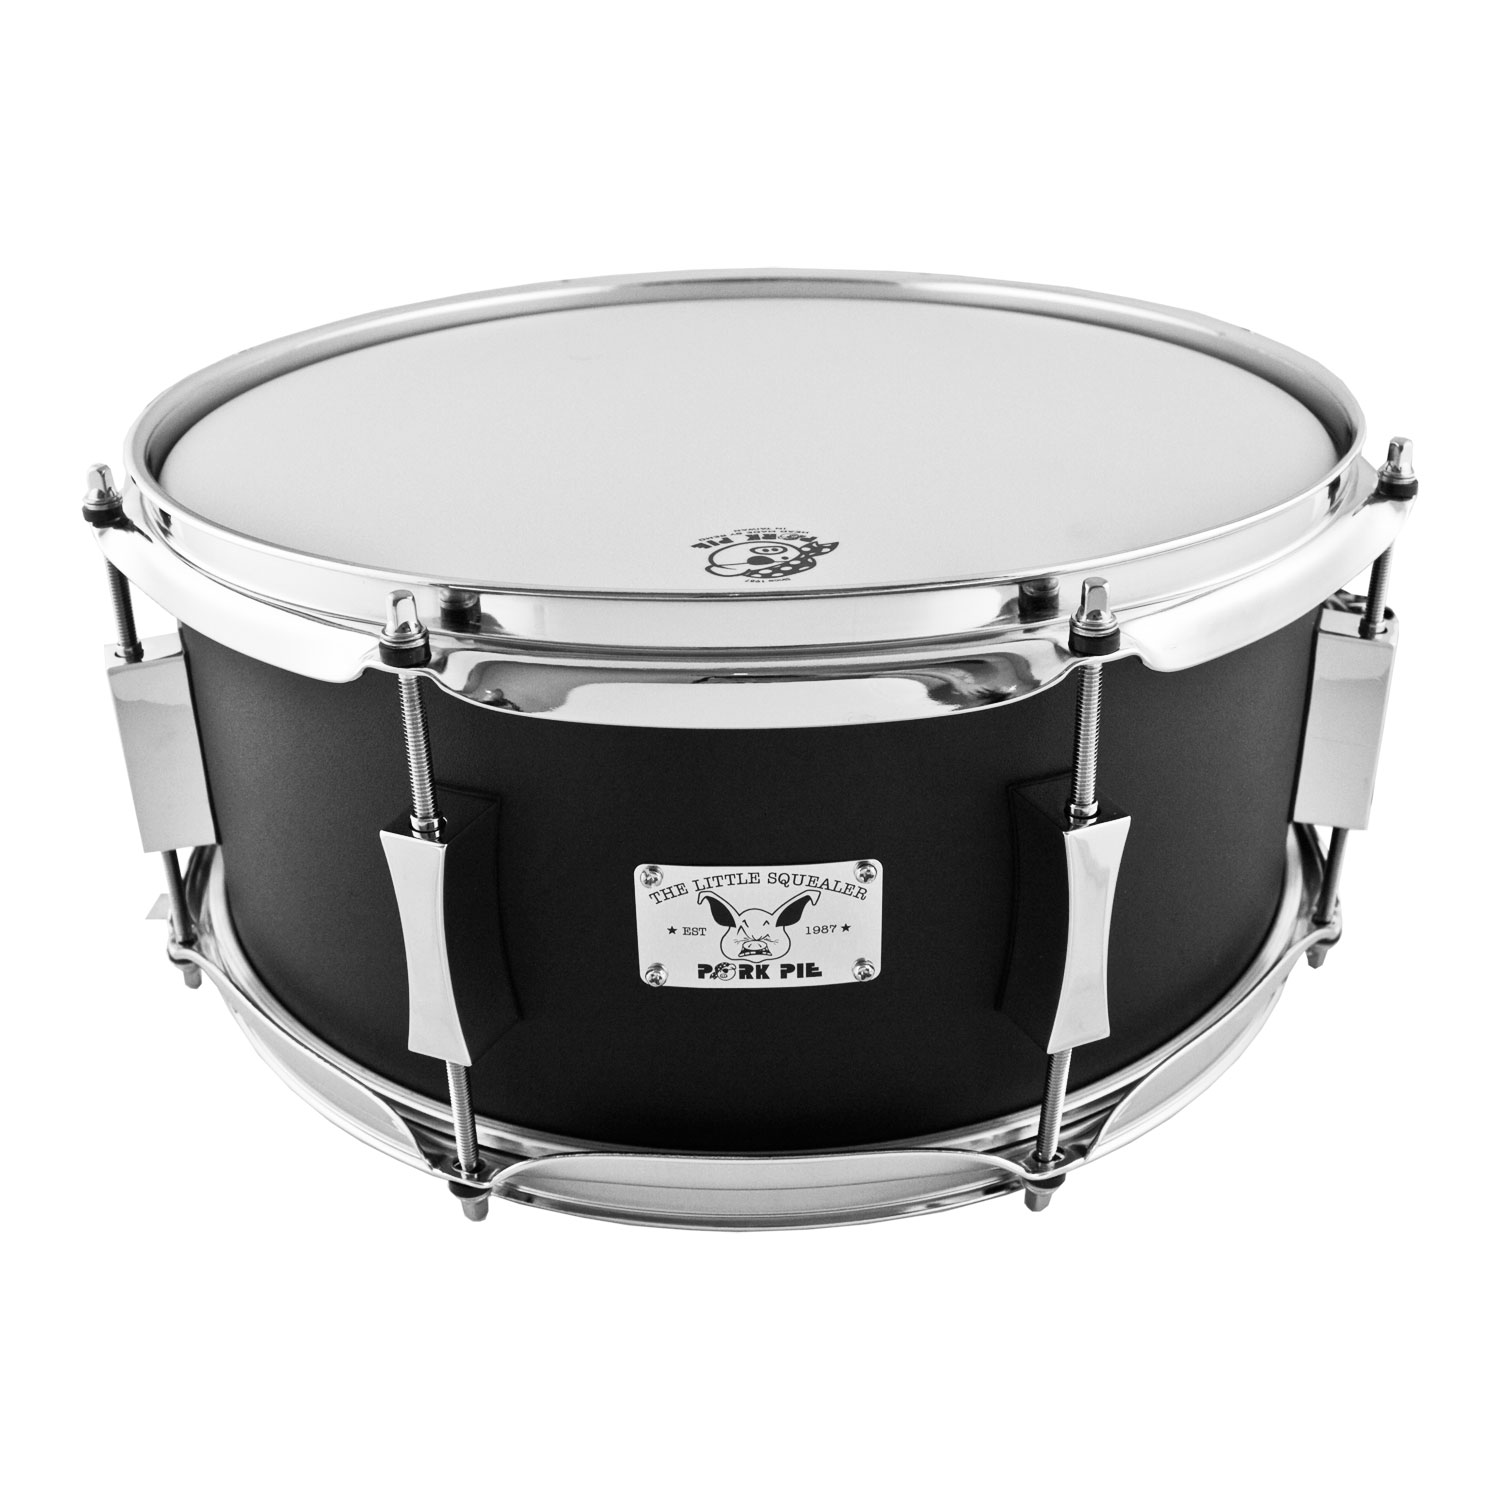 "Pork Pie Percussion 6"" x 14"" Little Squealer Steel Snare Drum in Black Wrinkle Powder Coat"